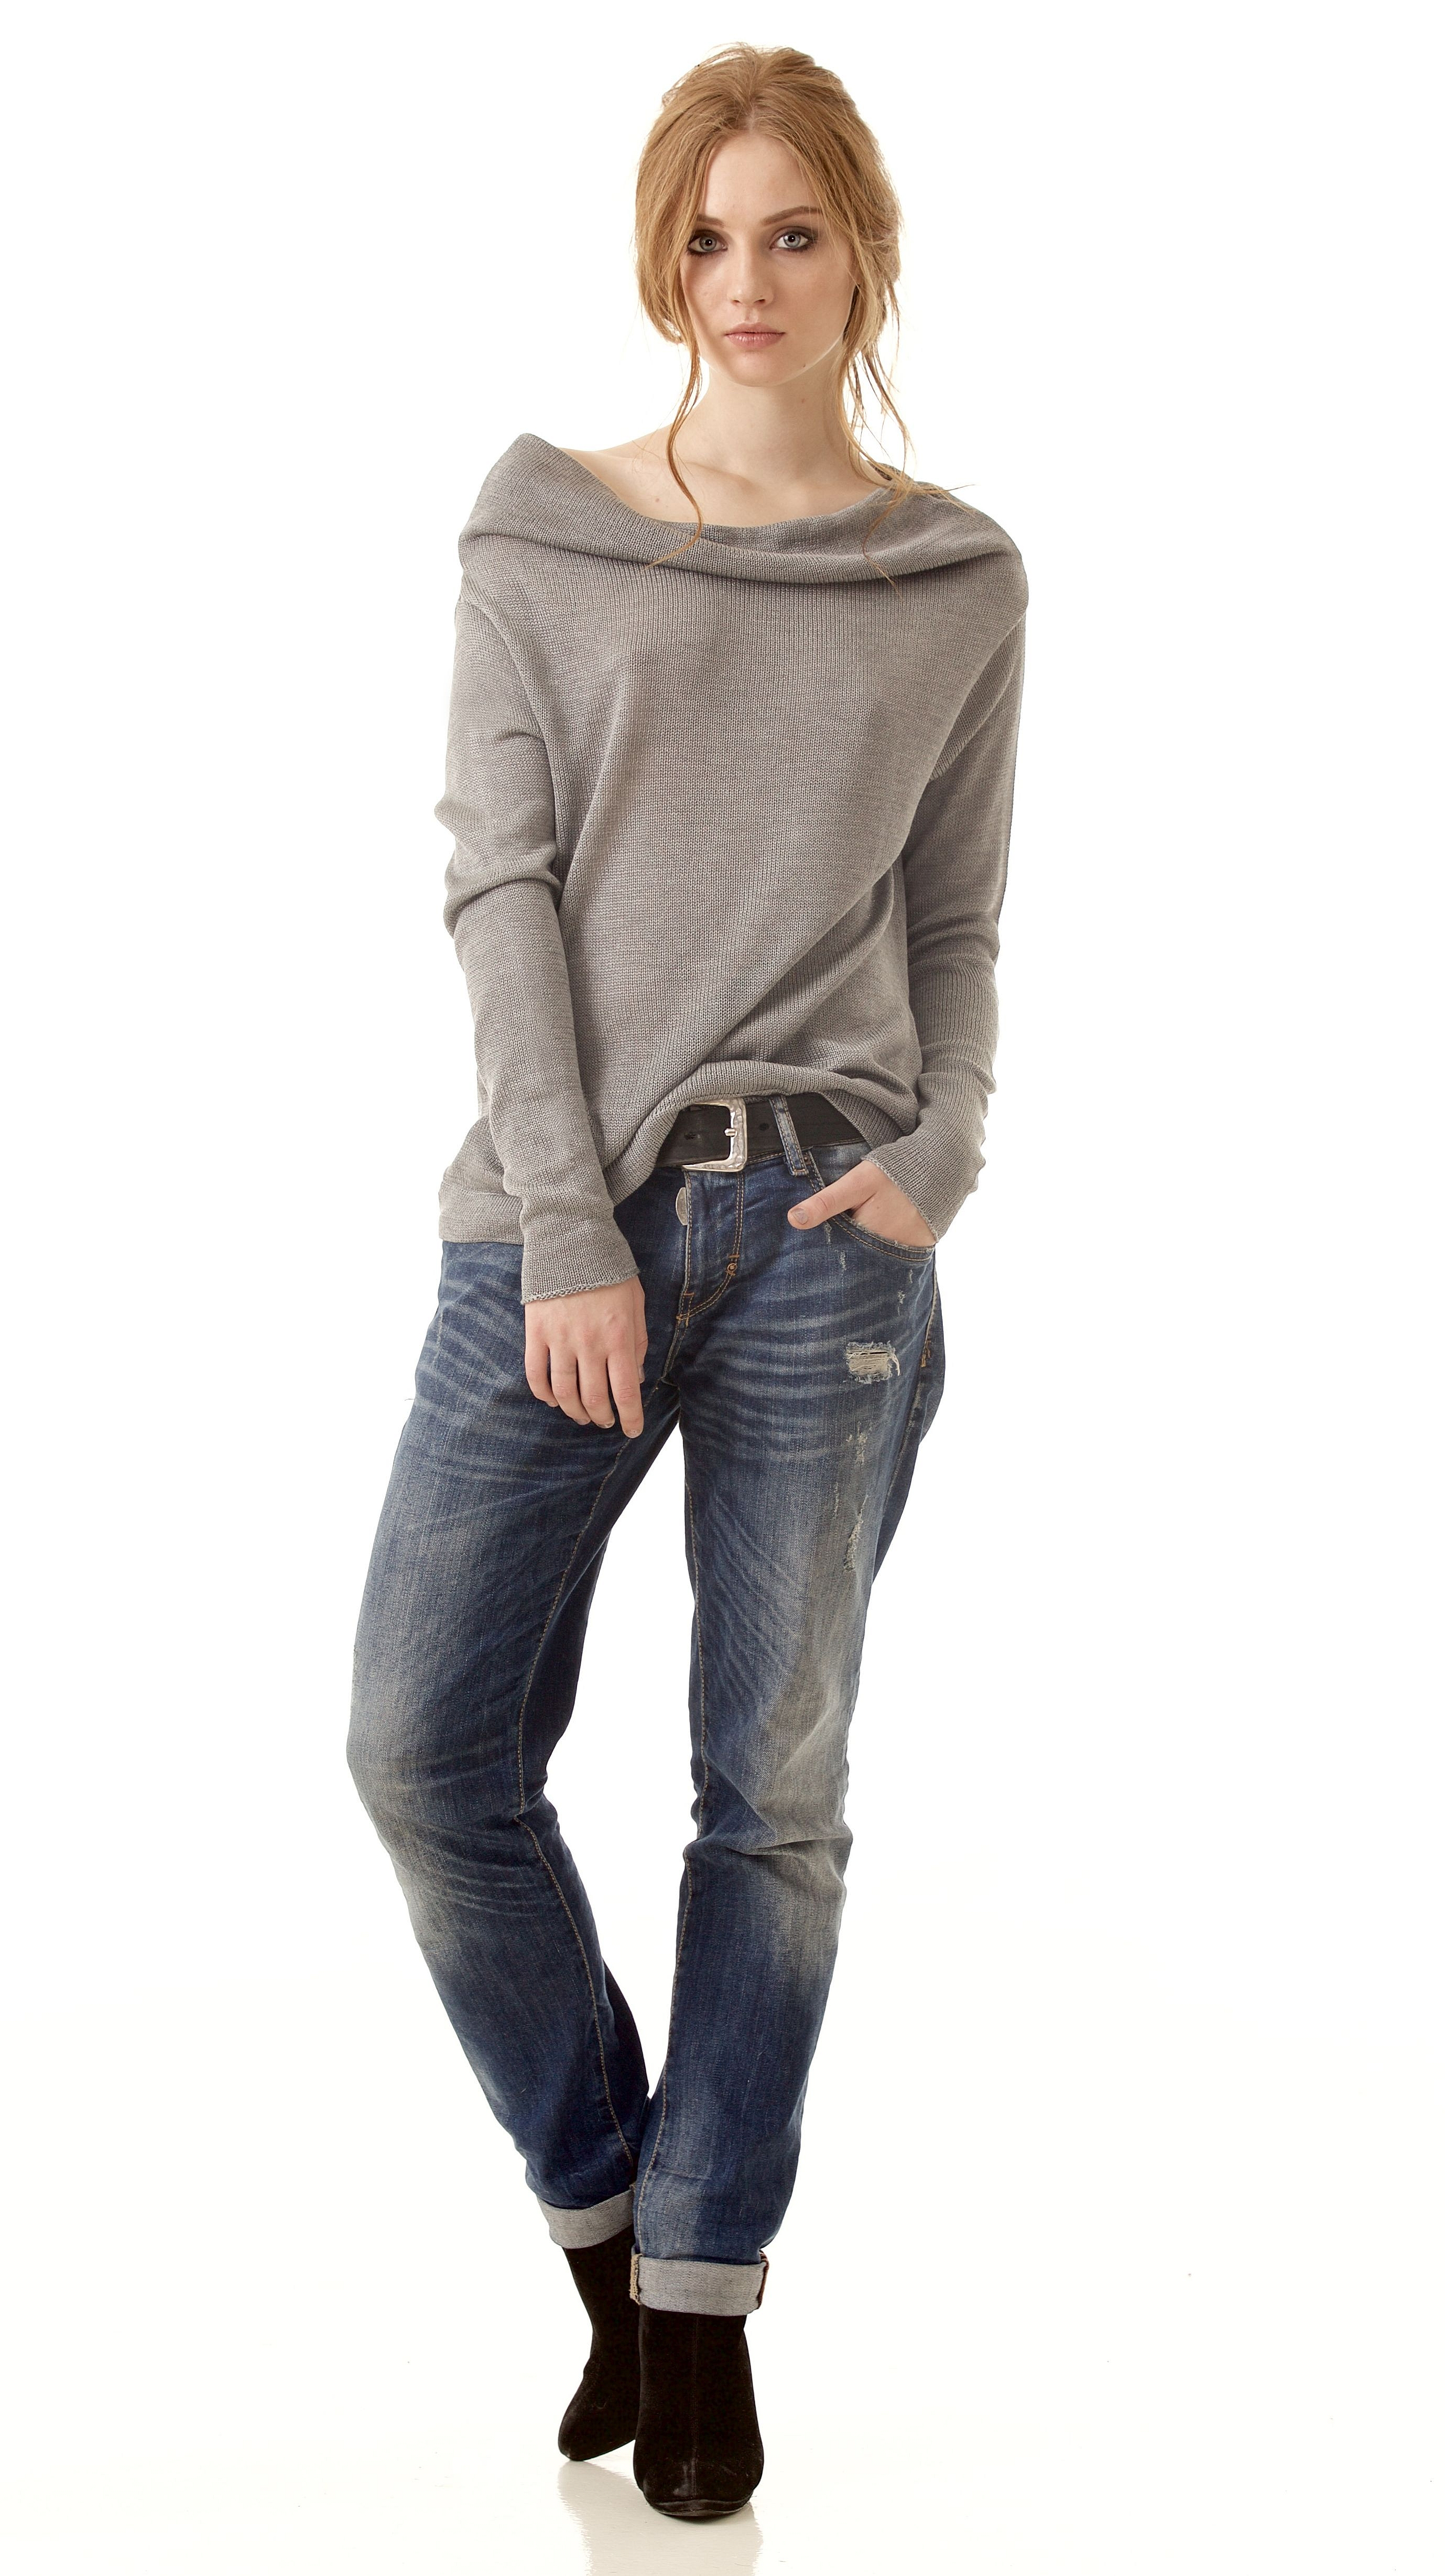 dfe3b94dce594 Grey cashmere womens off shoulder sweater pullover AGNES